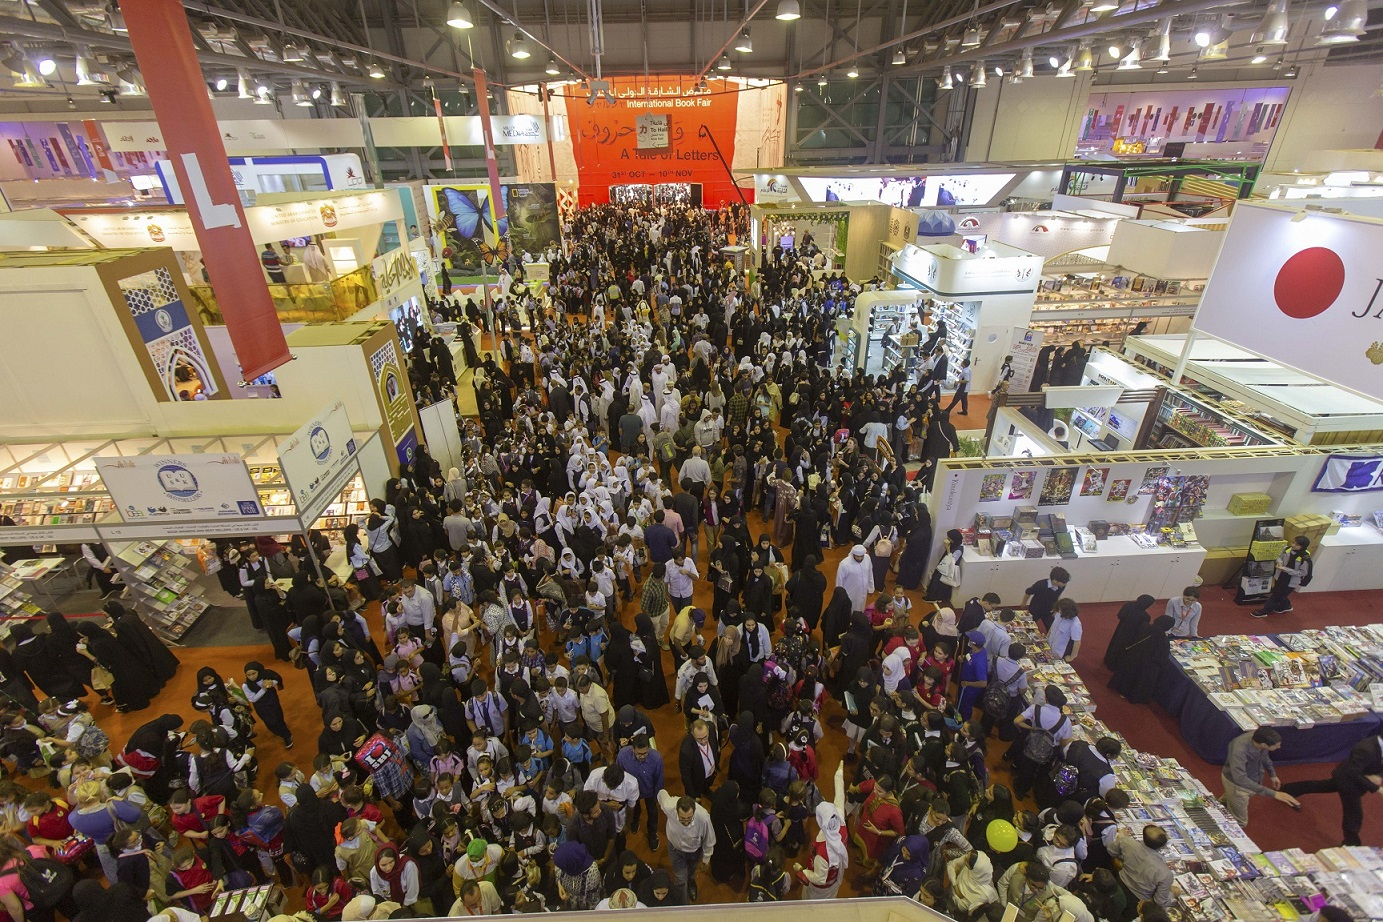 38th Sharjah International Book Fair to be organized from Oct 30